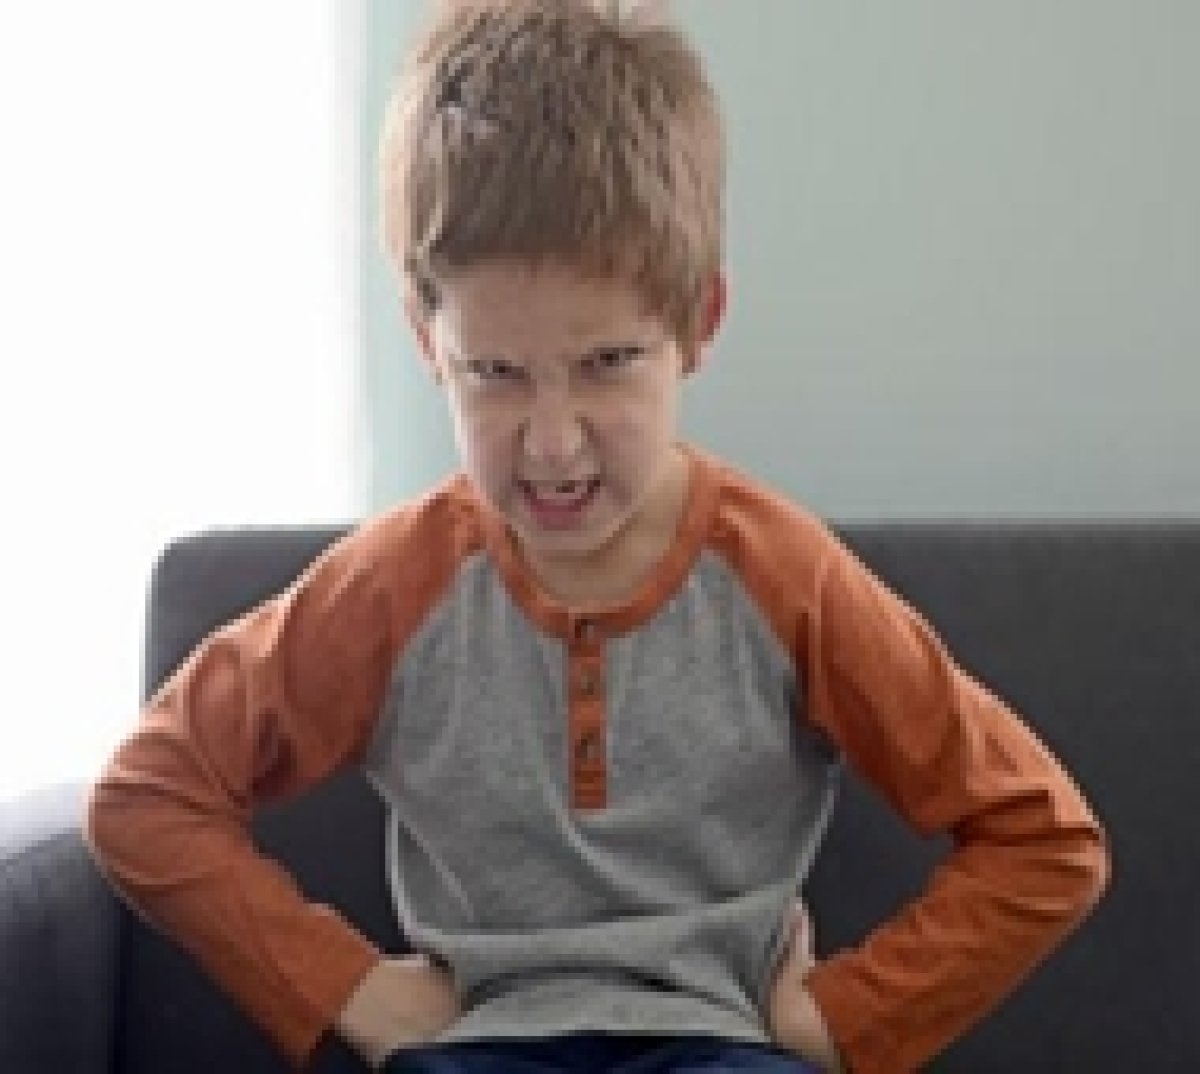 Omega-3 fatty acids can lower childhood aggression